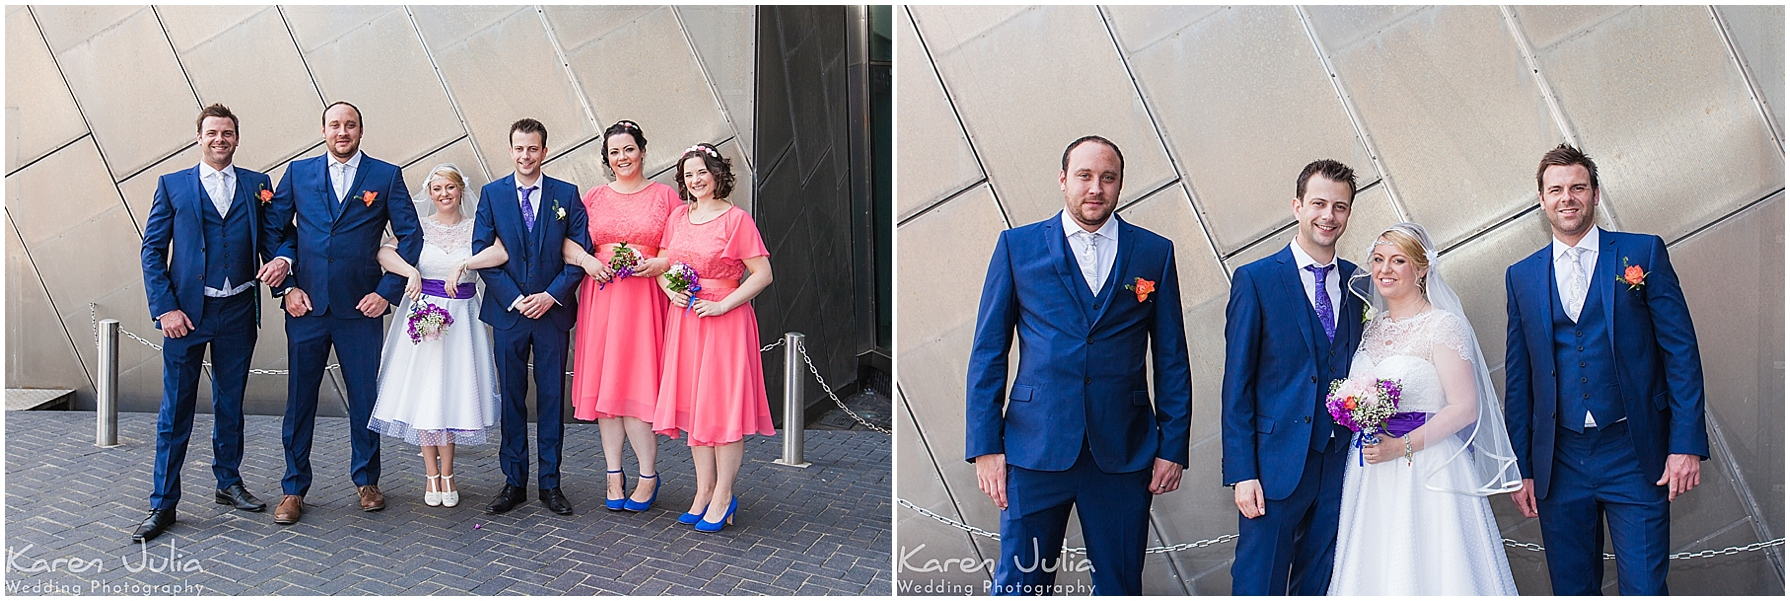 Rock-Roll-Lowry-Theatre-Wedding-Photography-11